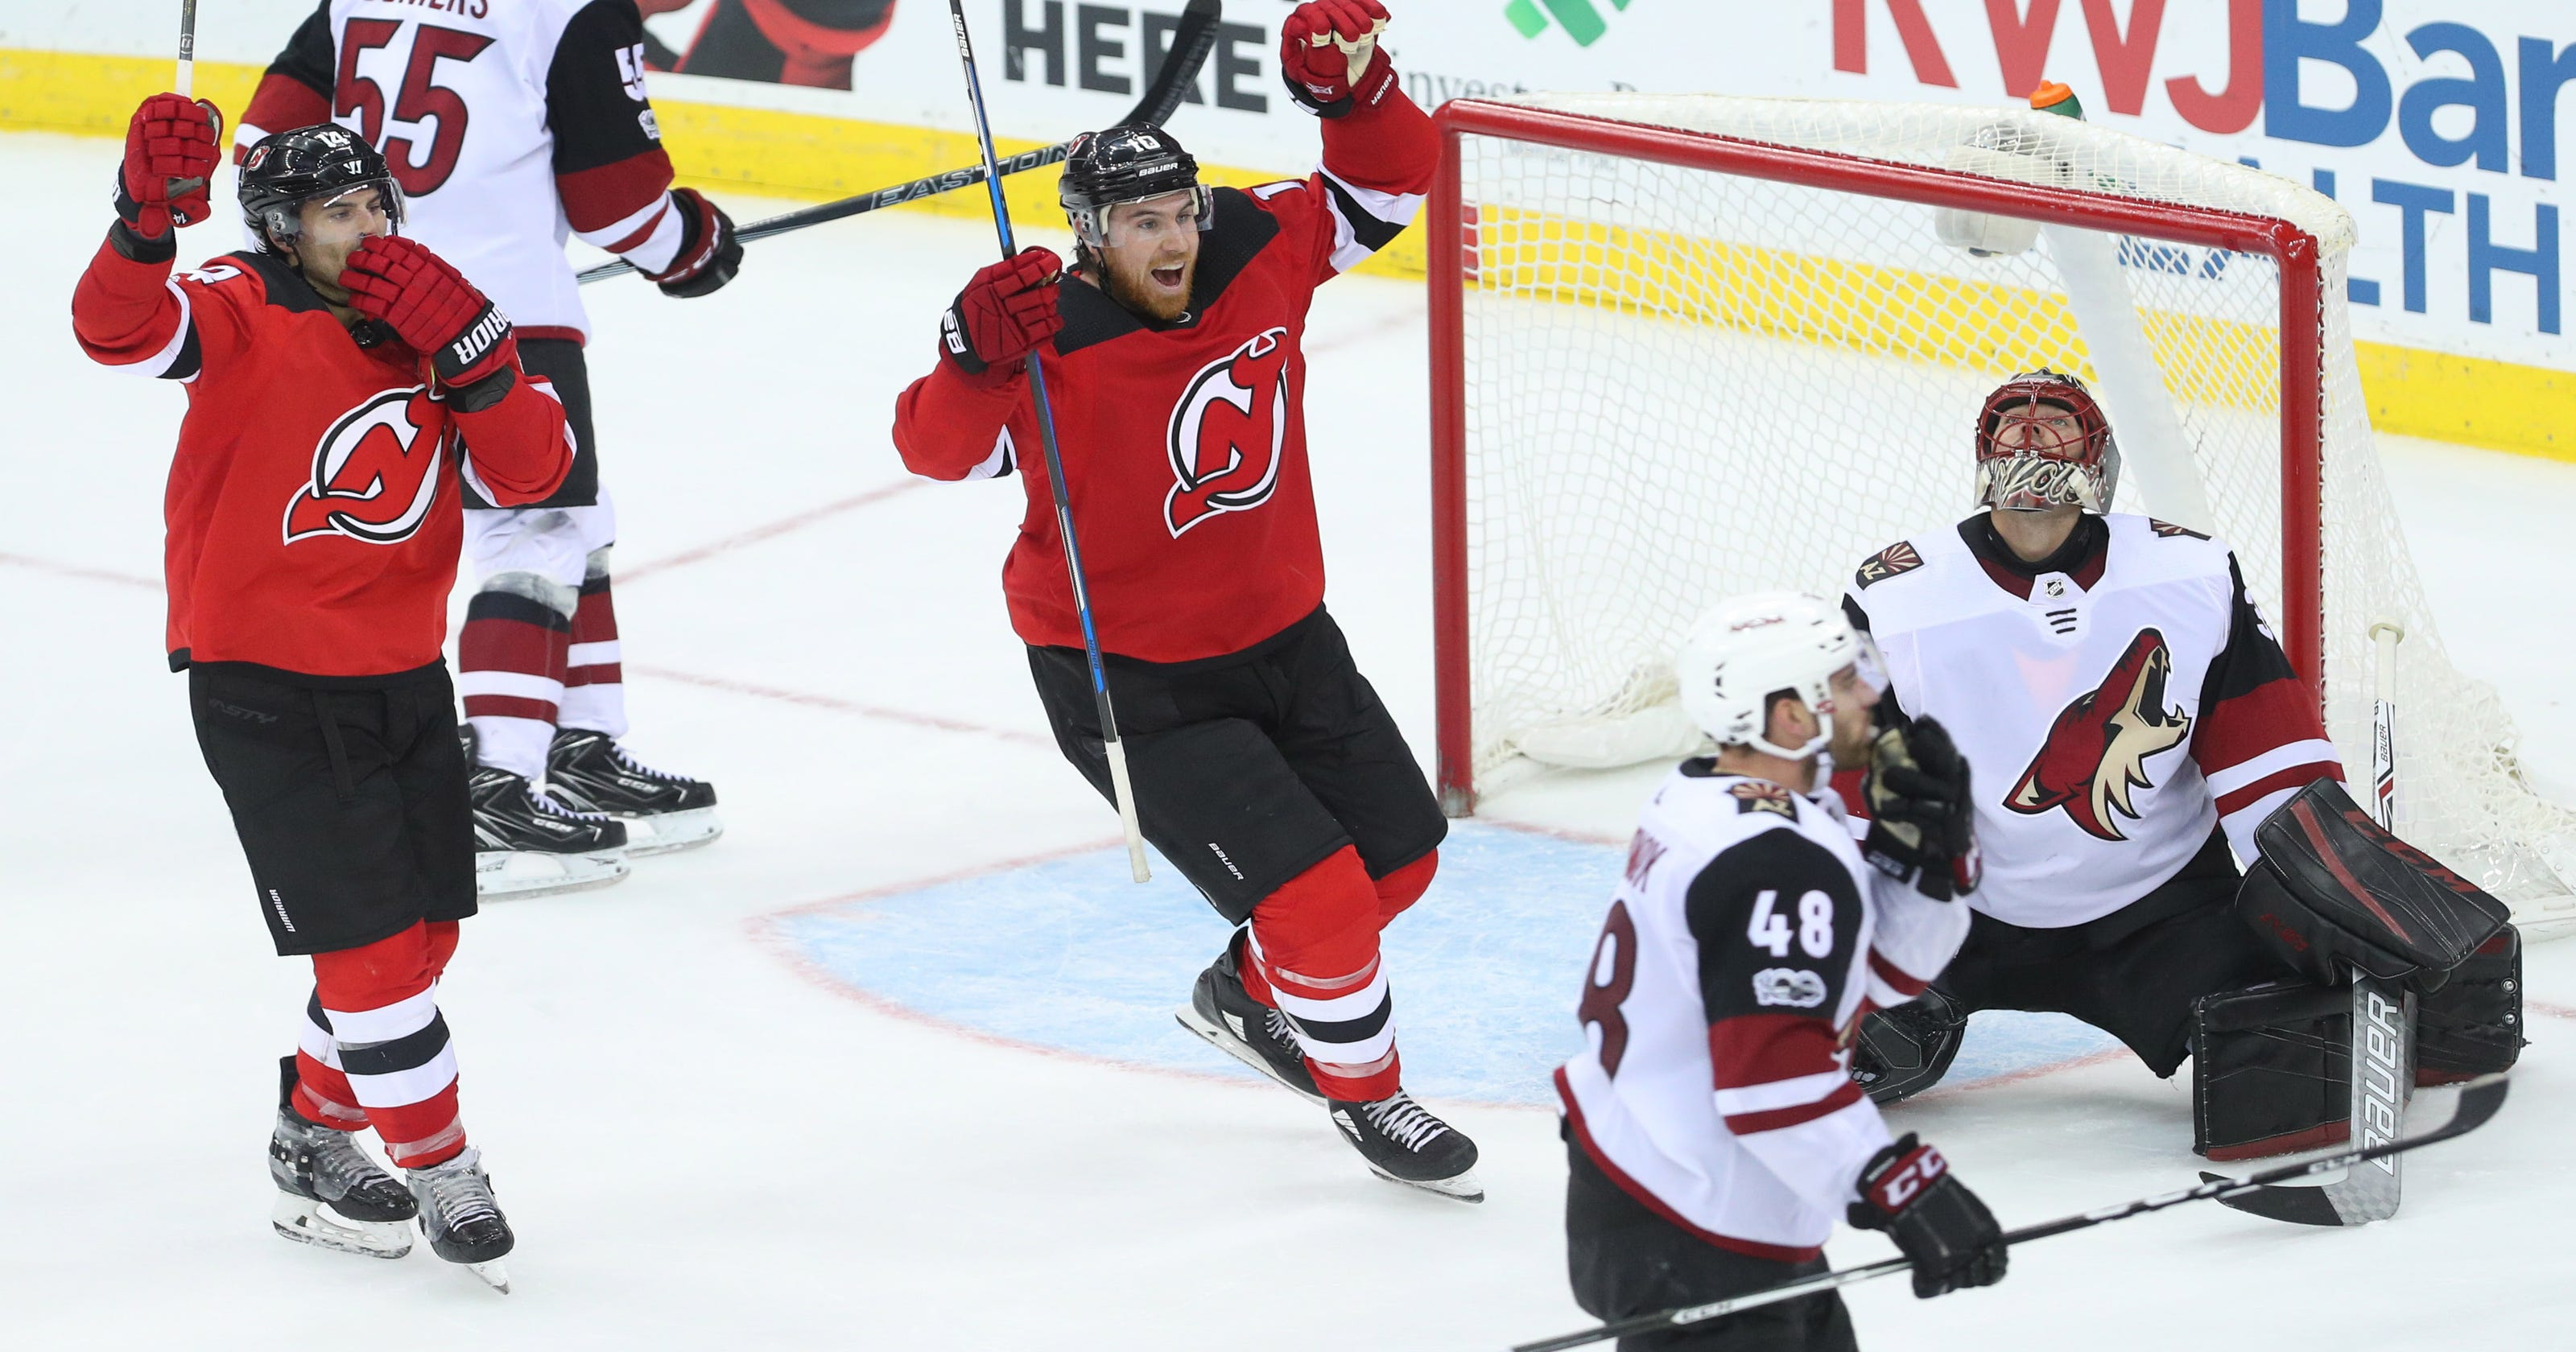 ec209d8c1 Arizona Coyotes off to NHL s worst start in 74 years